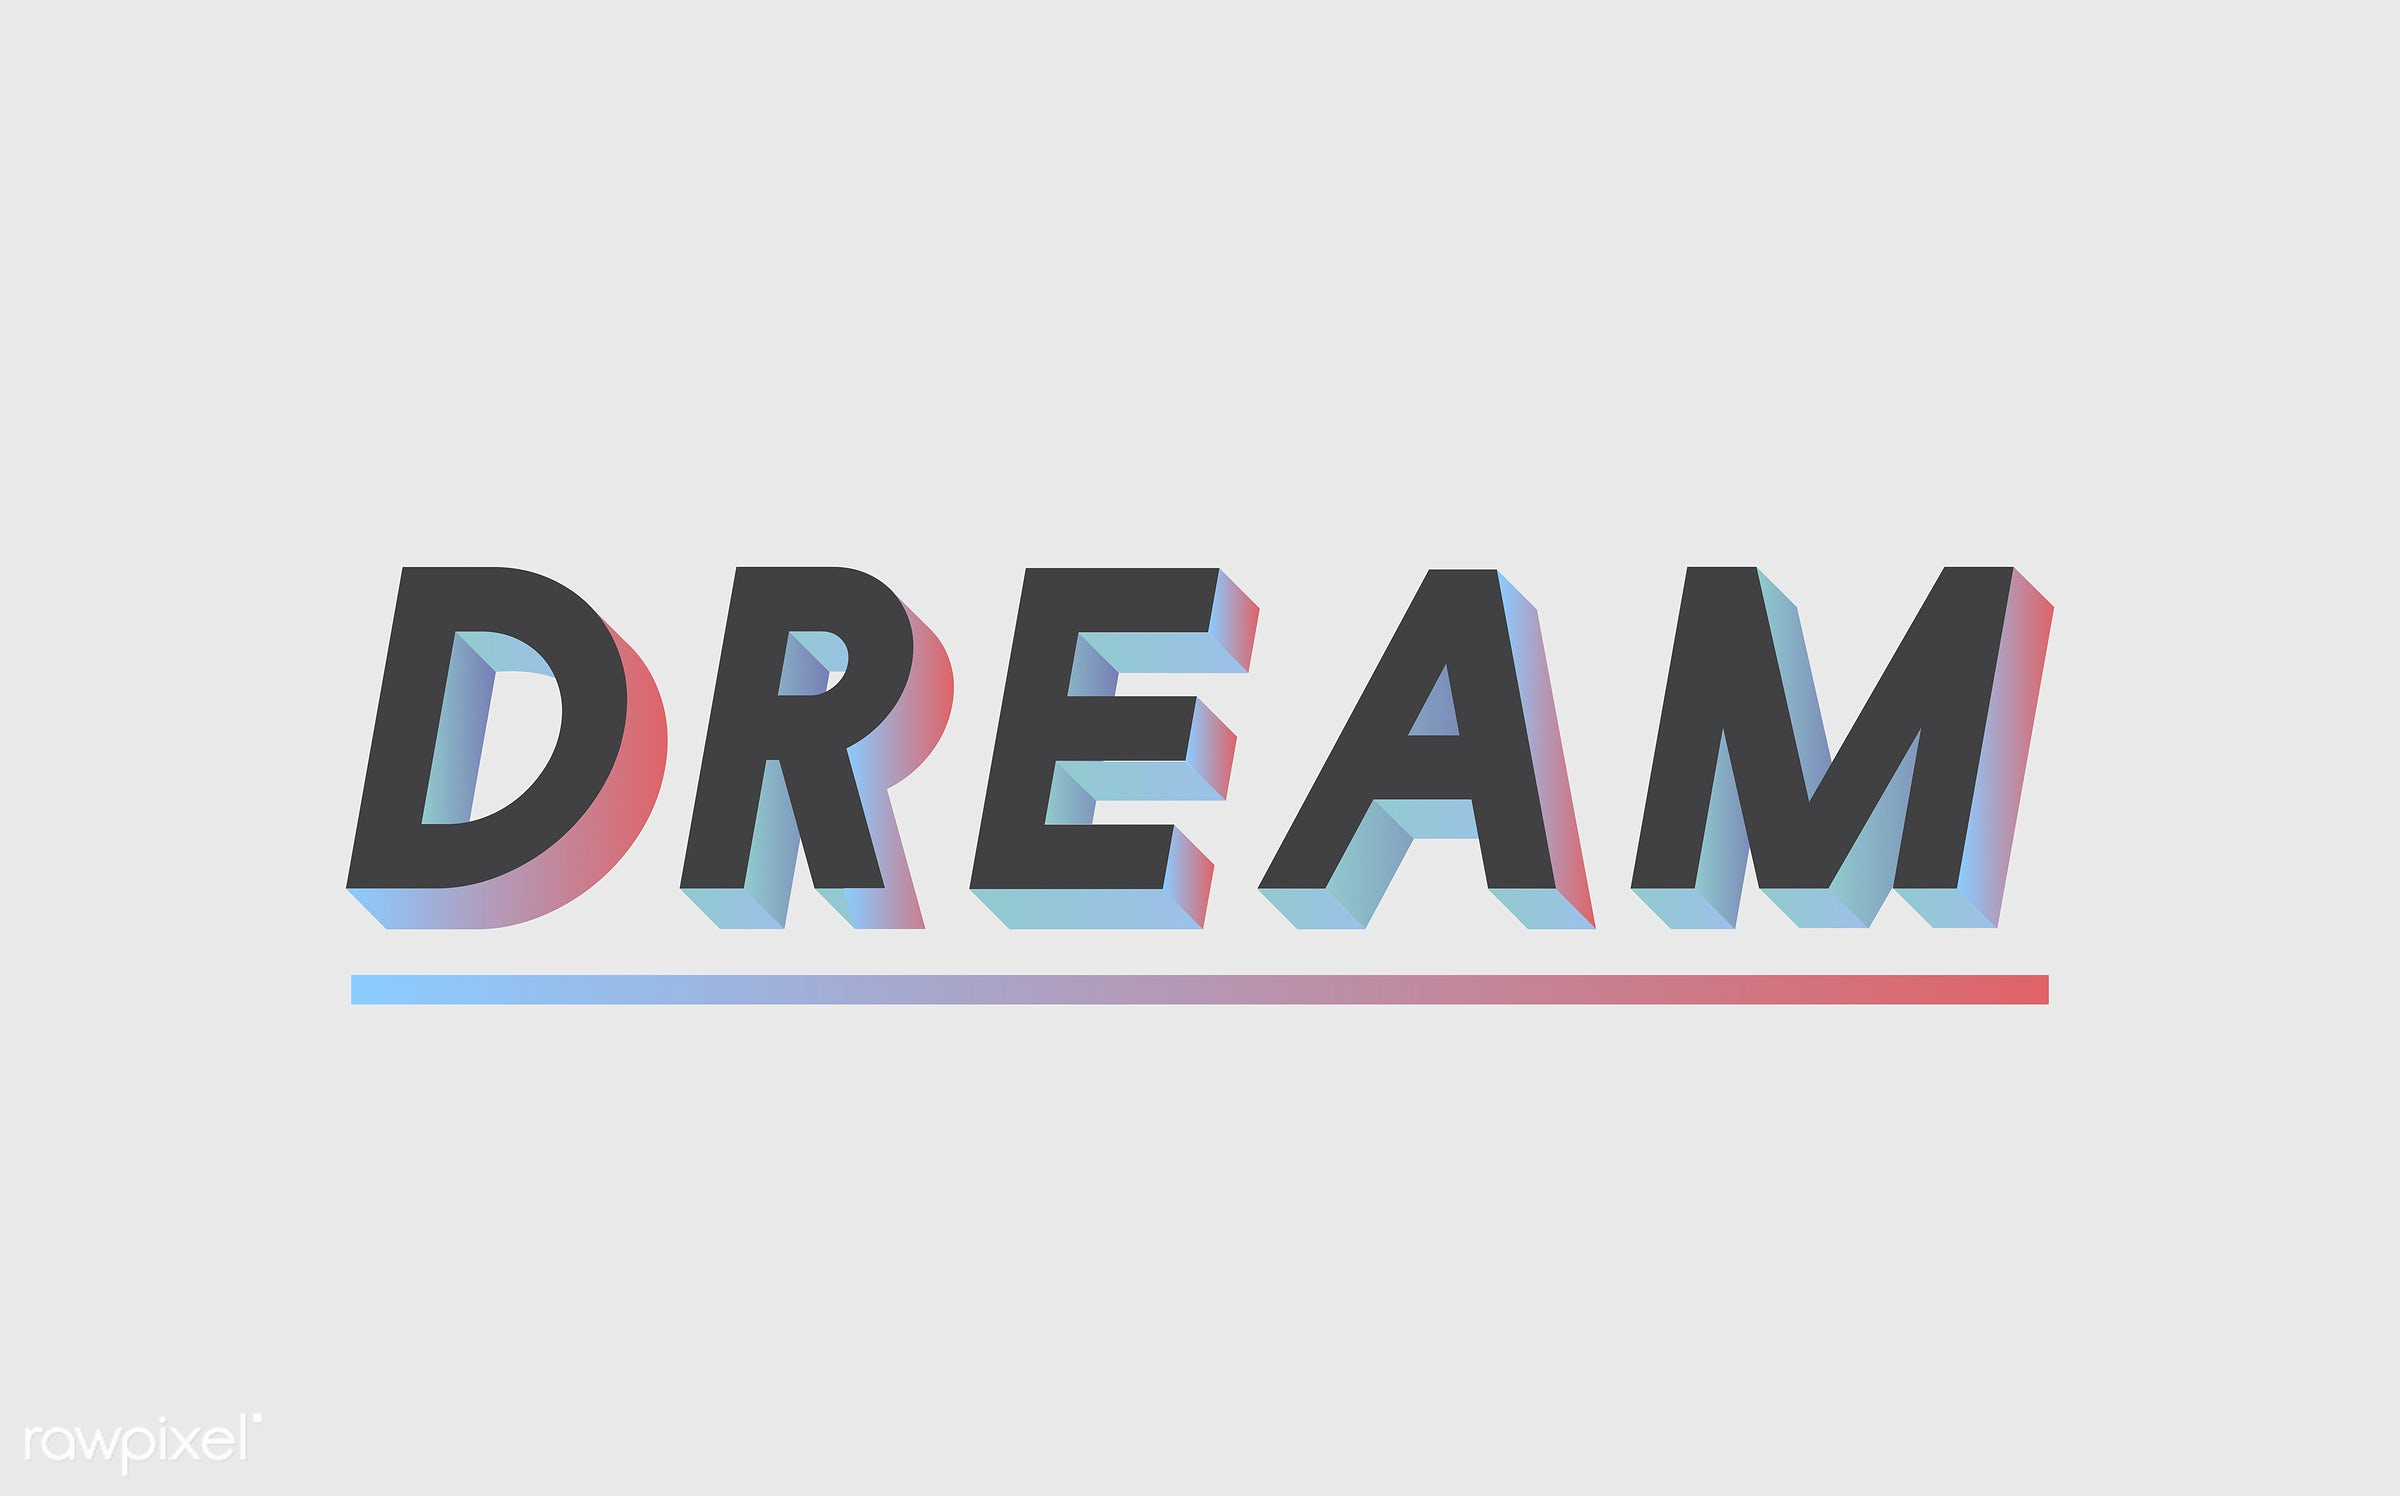 neon, colorful, 3d, three dimensional, vector, illustration, graphic, word, white, black, dream, dreaming